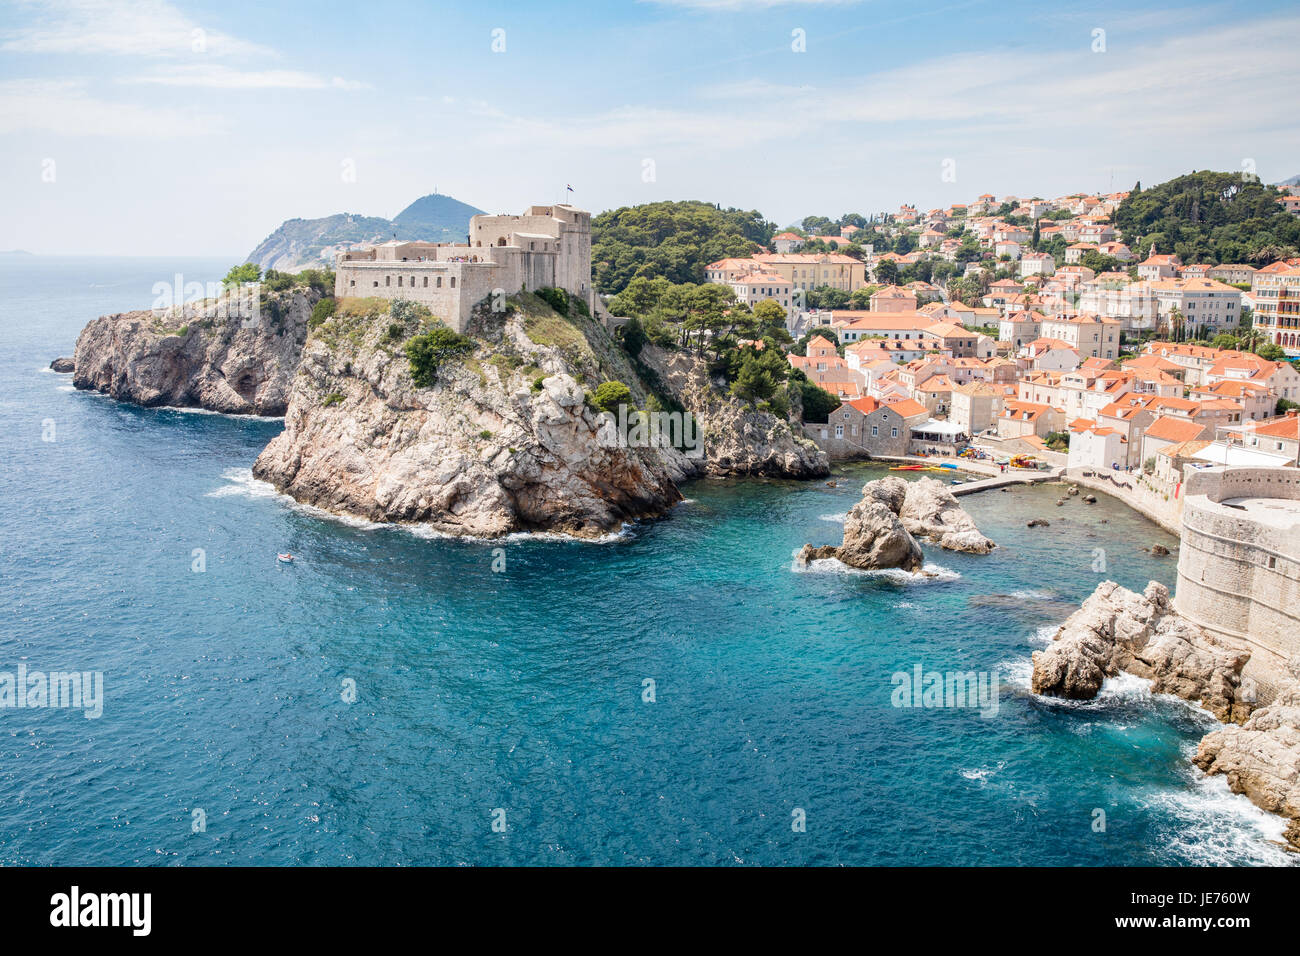 Lovrijenac or St Lawrence Fortress guarding the sheltered cove and northern seaward approach to Dubrovnik old town - Stock Image